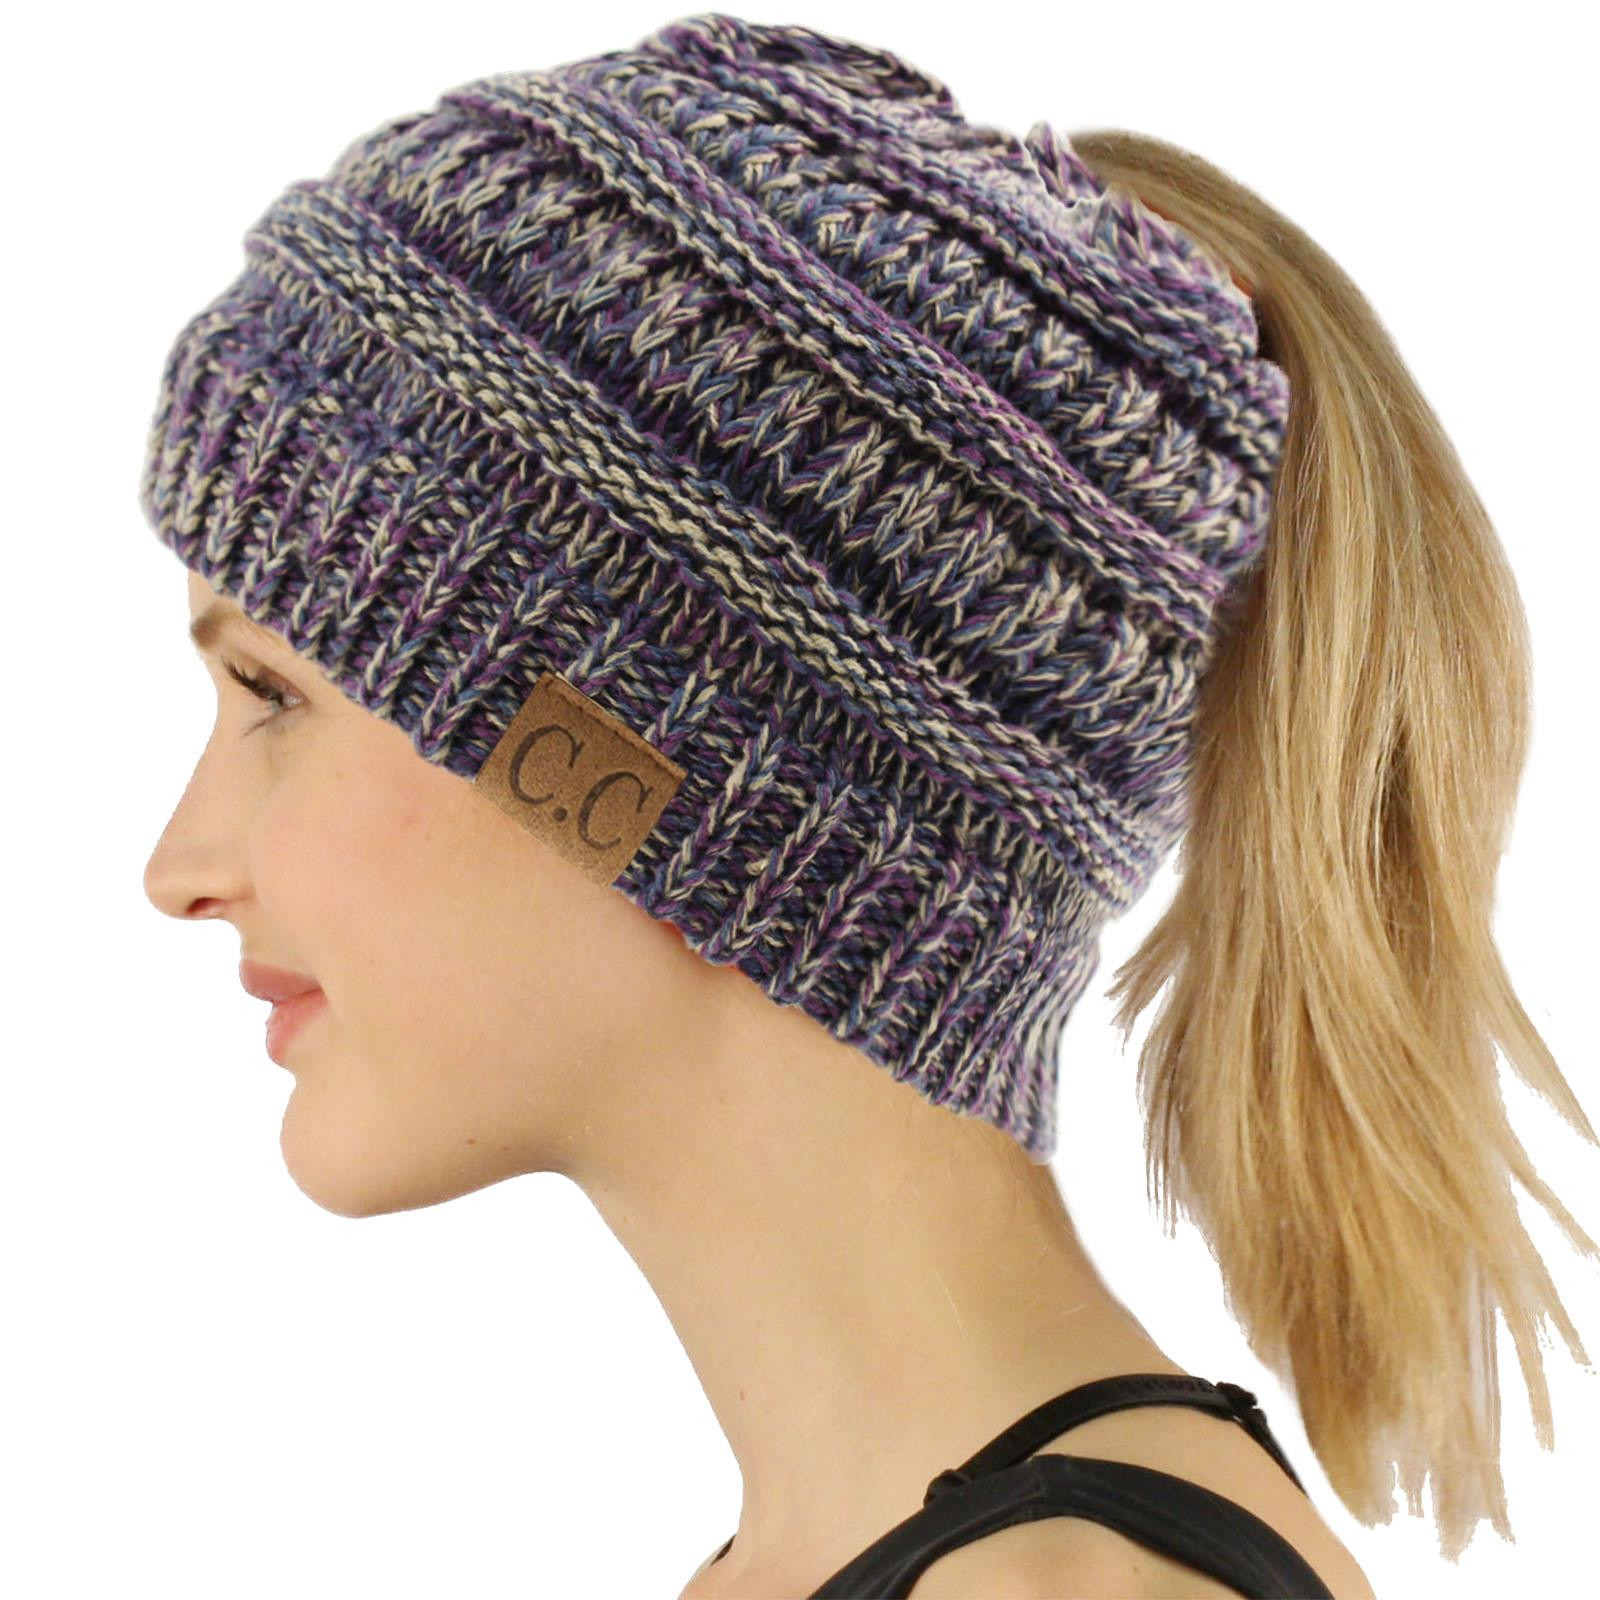 Ponytail Beanie Hat Best Of Cc Beanietail Messy High Bun Ponytail Stretchy Knit Beanie Of Amazing 48 Pictures Ponytail Beanie Hat